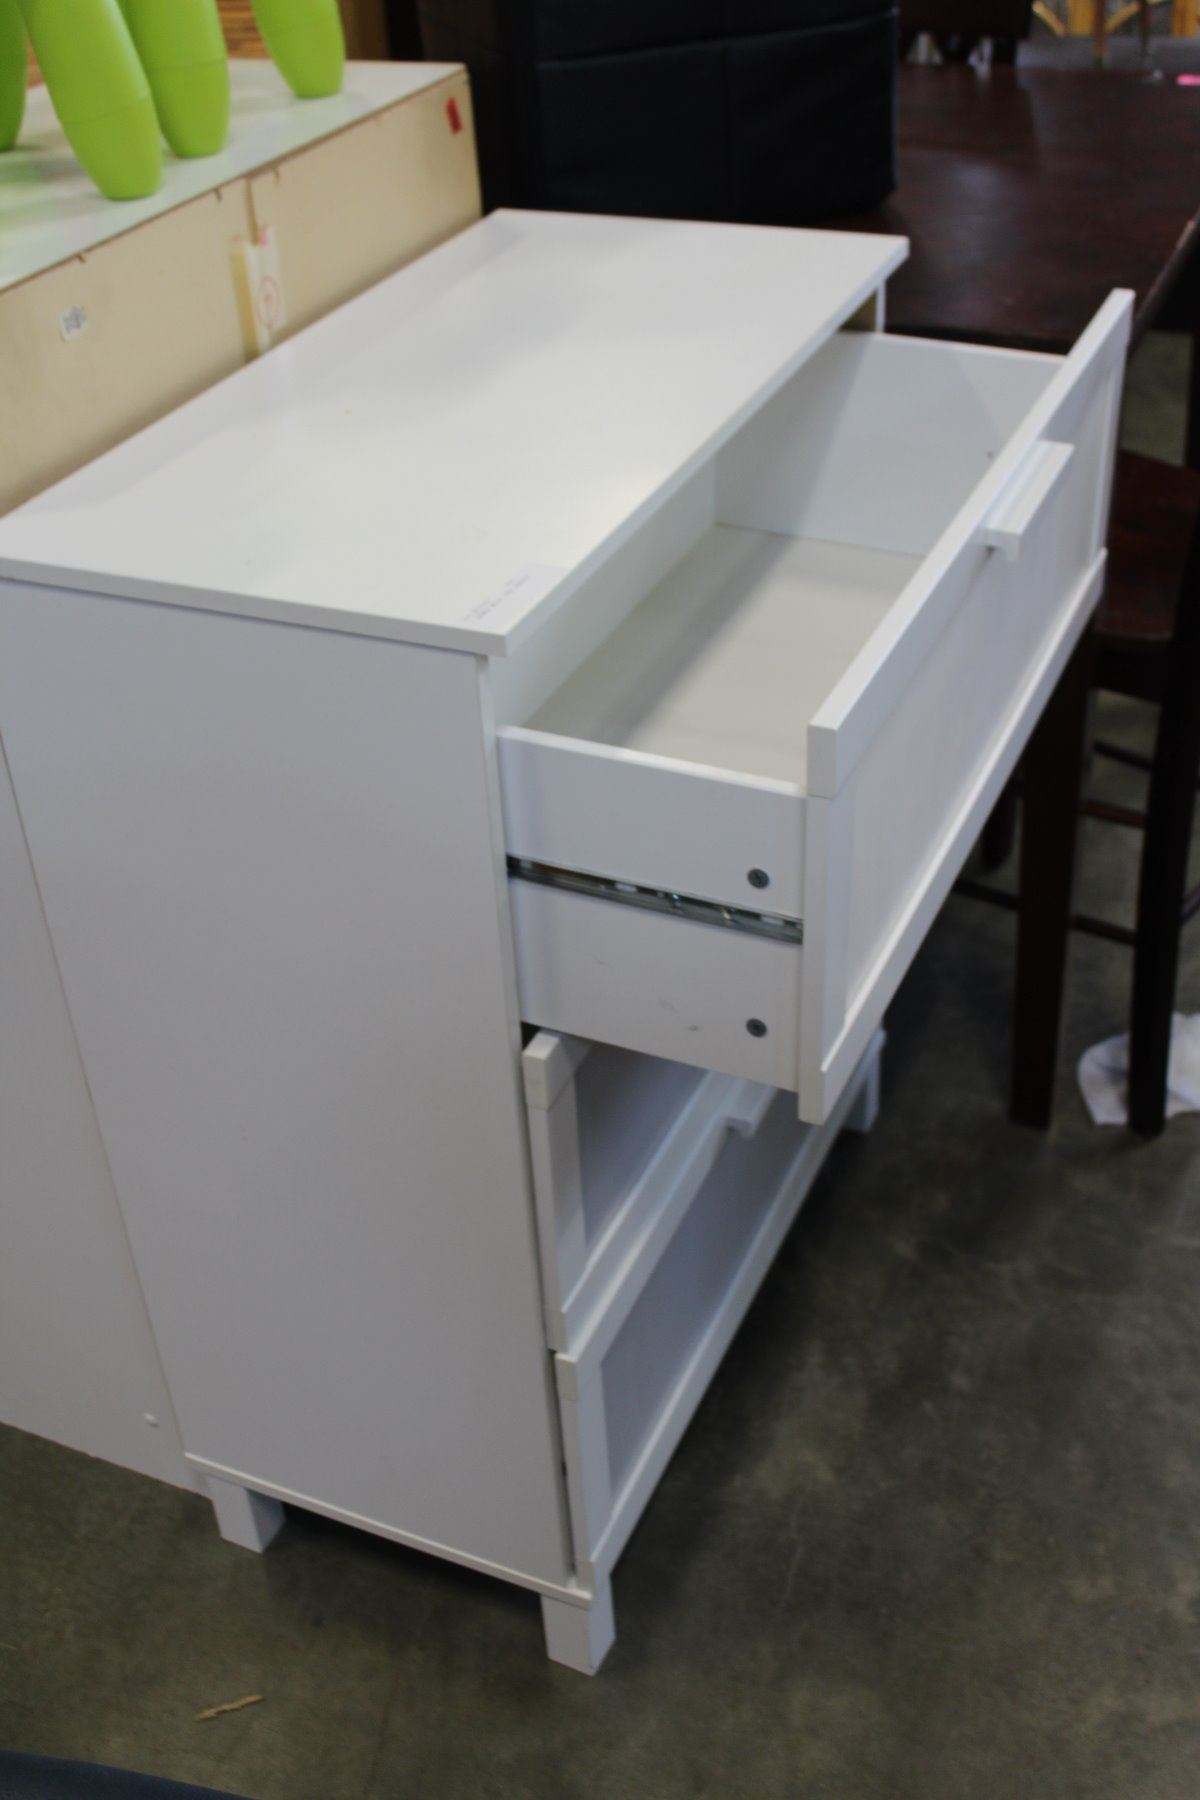 #7A8D2F 3 DRAWER WHITE IKEA DRESSER with 1200x1800 px of Brand New Ikea 3 Drawer Dresser White 18001200 pic @ avoidforclosure.info